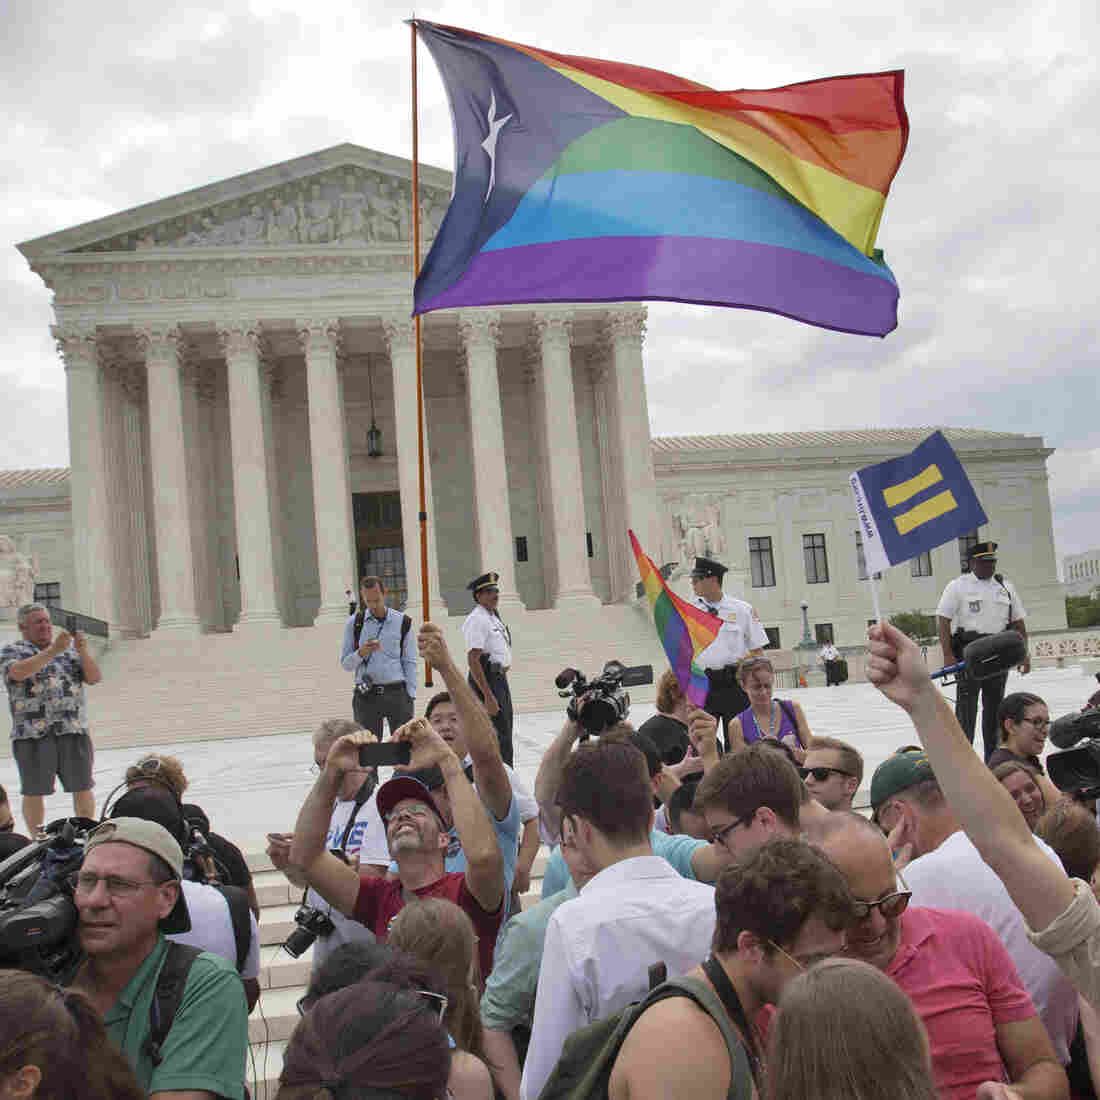 Supreme Court's Decision On Same-Sex Marriage Expected To Boost Health Coverage